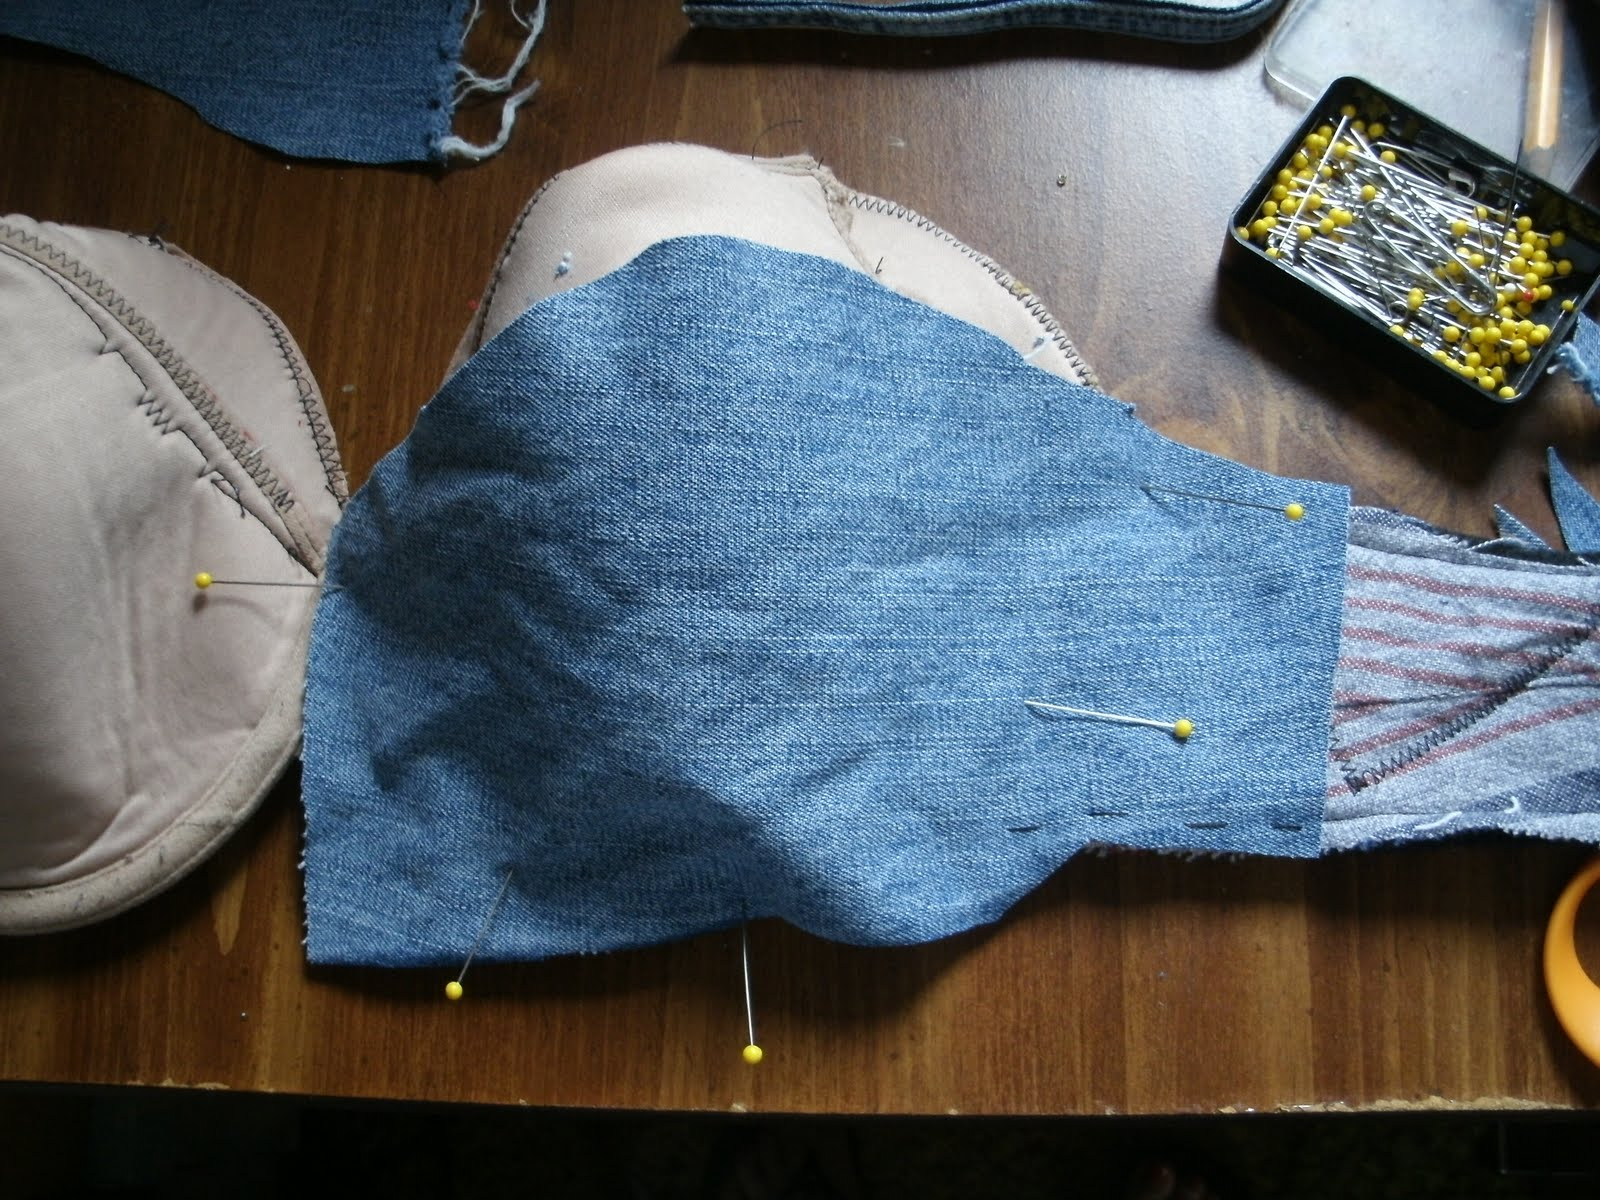 5bd9e47a27 I used up all of the old shirt fabric in the side straps. To reinforce the  cups I used denim from some old jeans. I have extended the bottom piece  over the ...